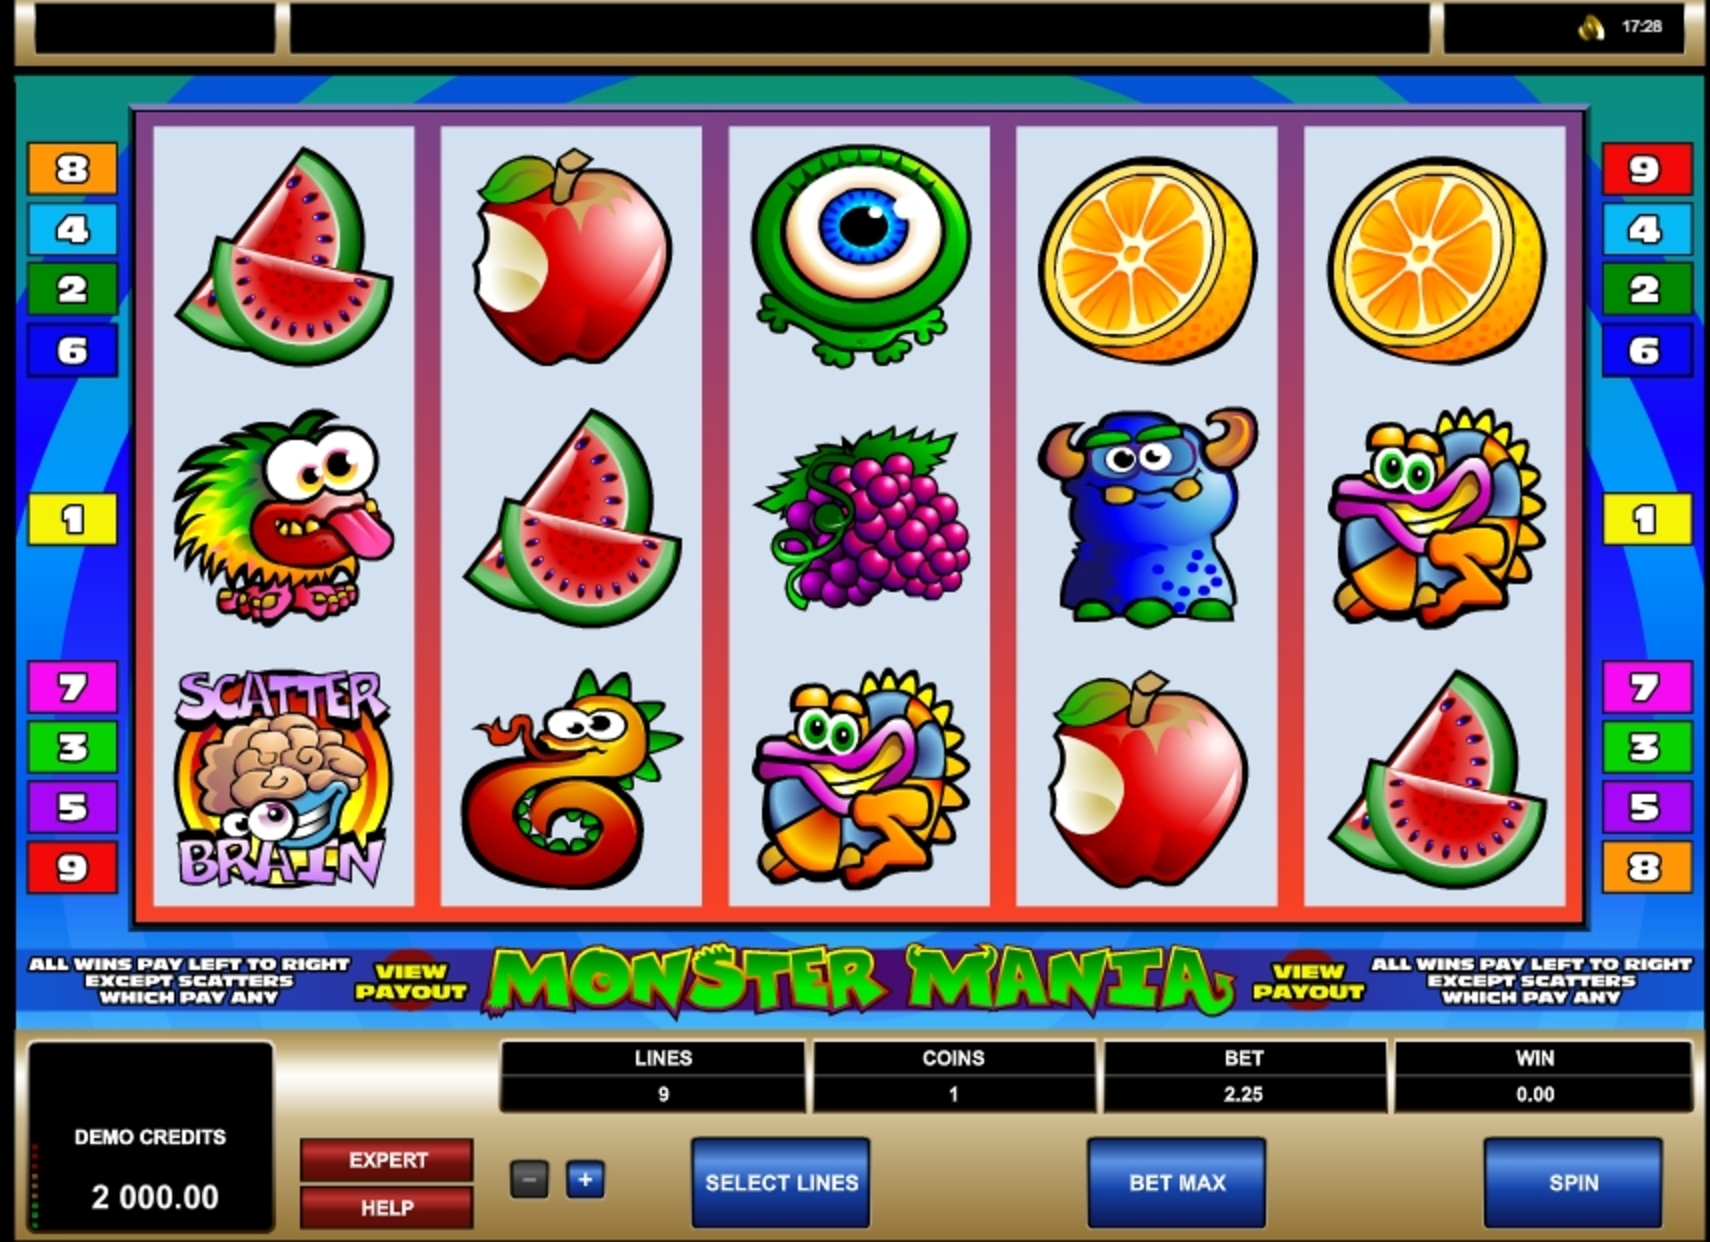 Reels in Monster Mania Slot Game by Microgaming